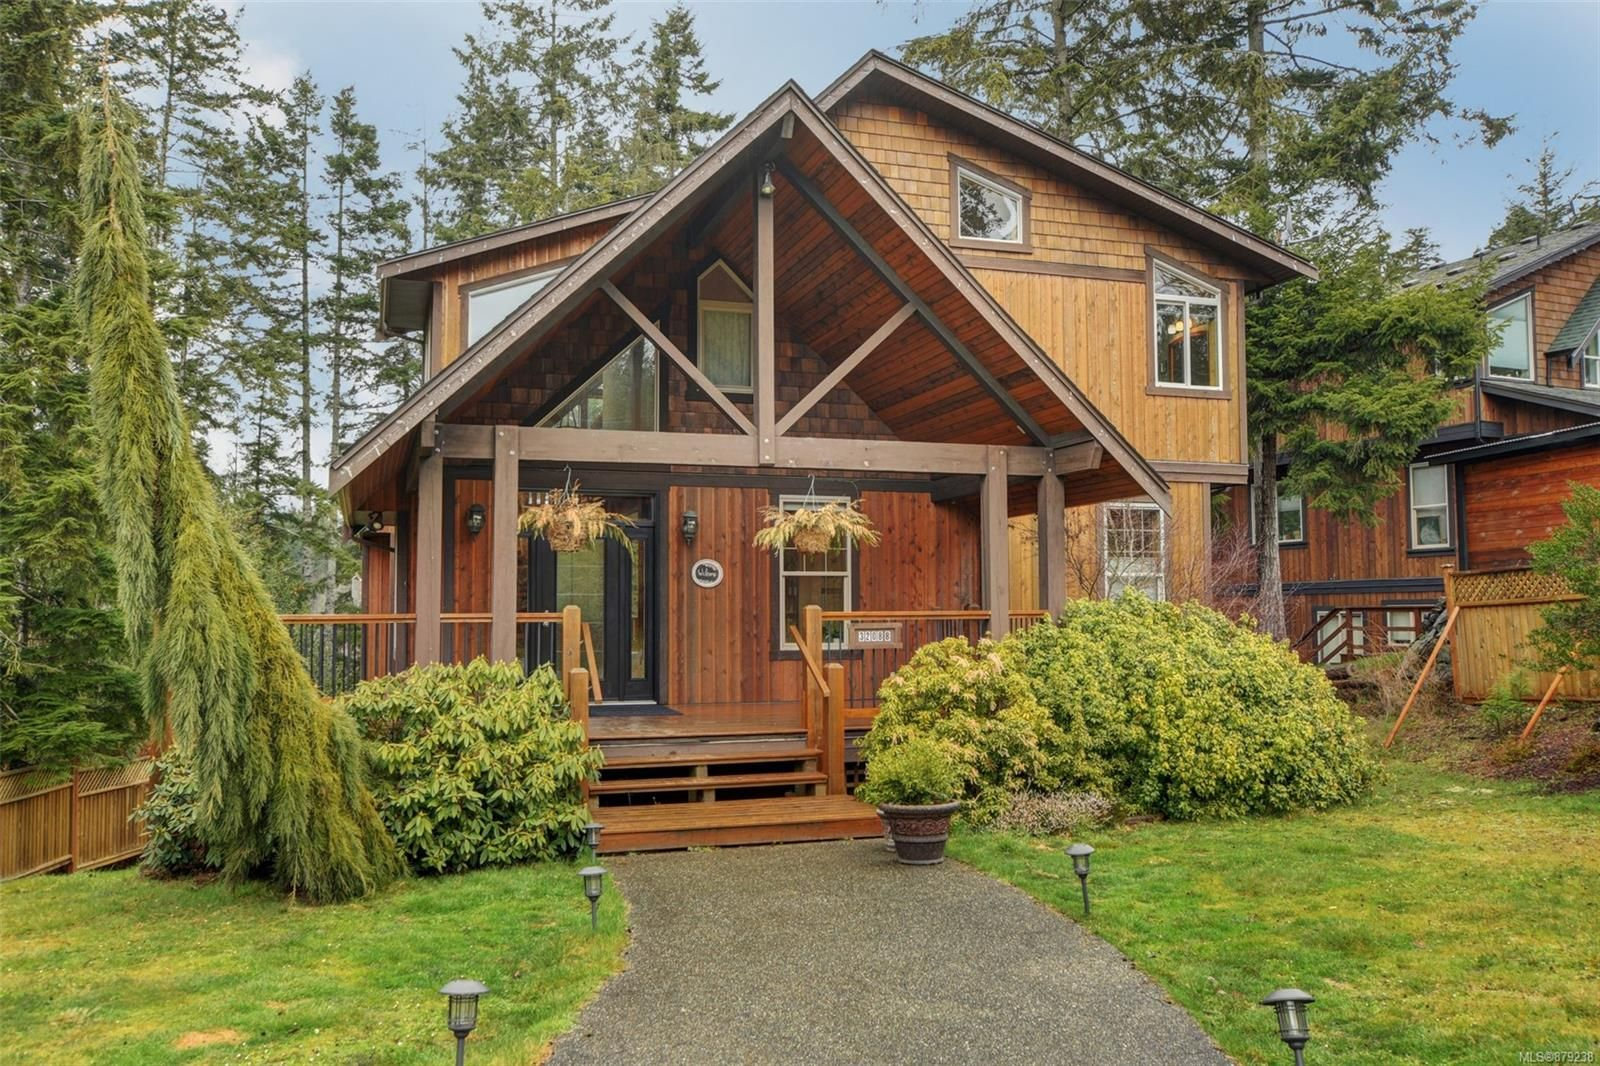 Main Photo: B 3208 Otter Point Rd in : Sk Otter Point House for sale (Sooke)  : MLS®# 879238